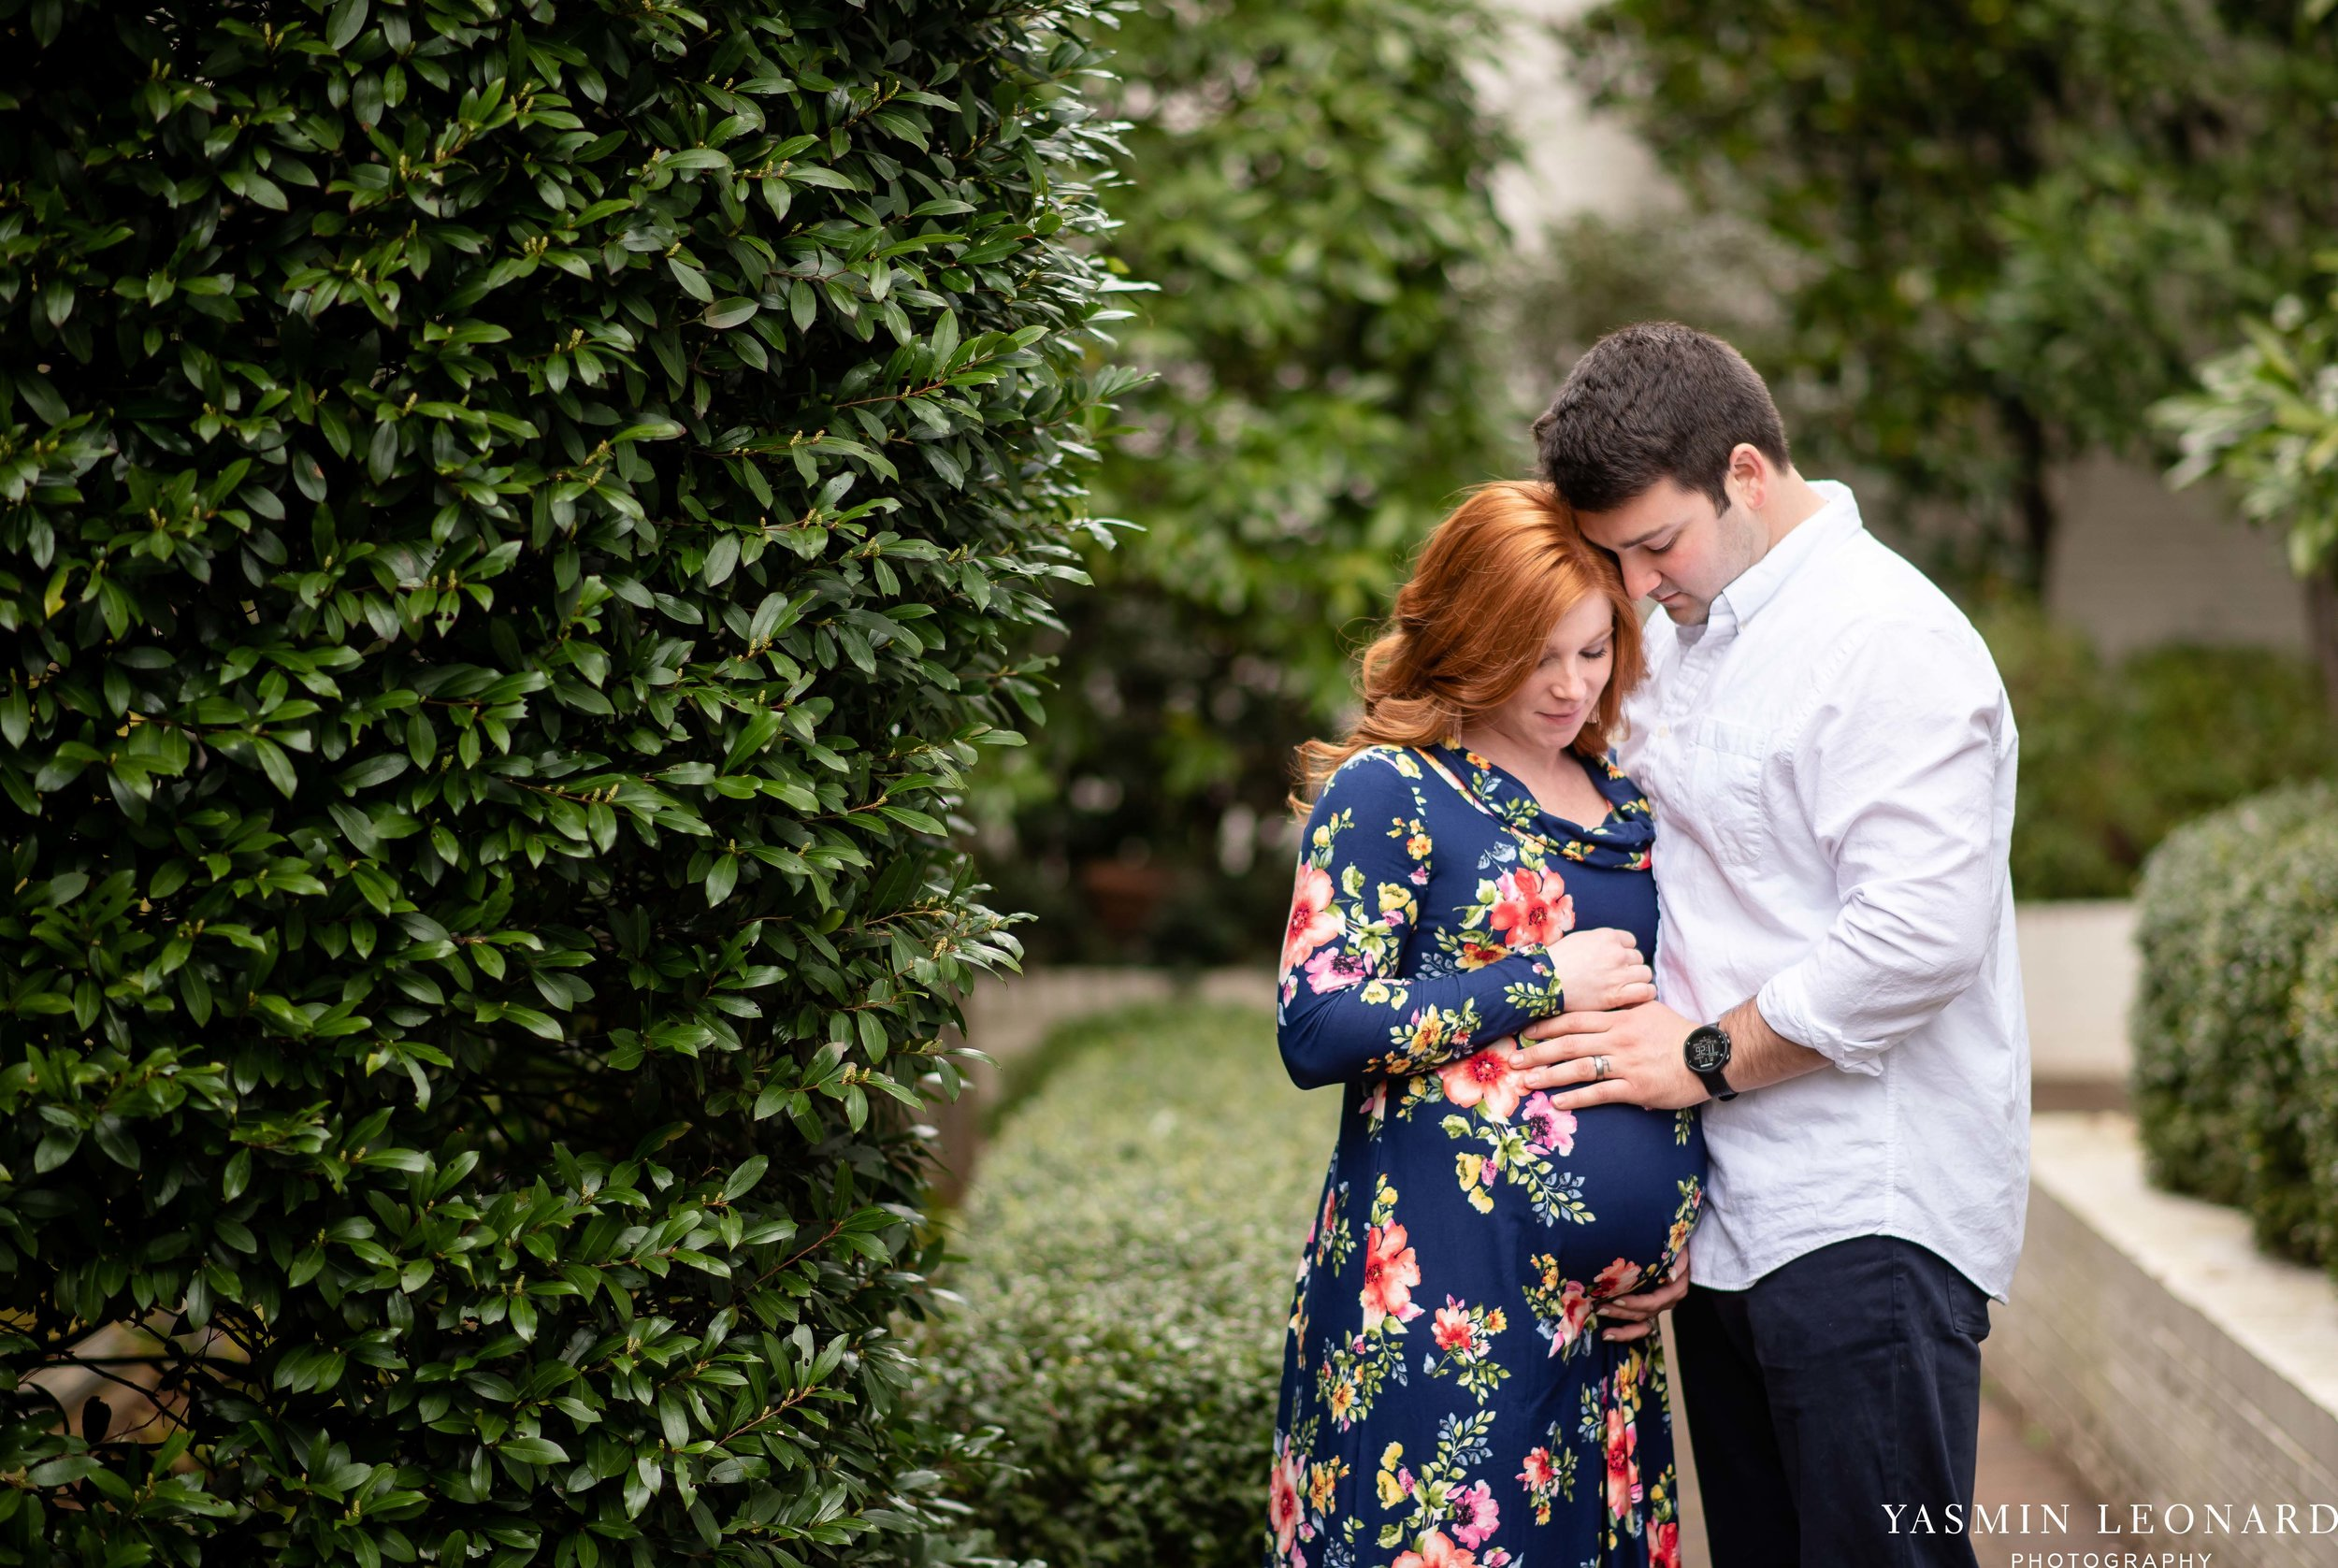 Maternity Session - The Proximity Hotel - Maternity Poses - Maternity Outfits - Maternity Photos - Pregnancy Announcement - Pregnancy Photos-1.jpg